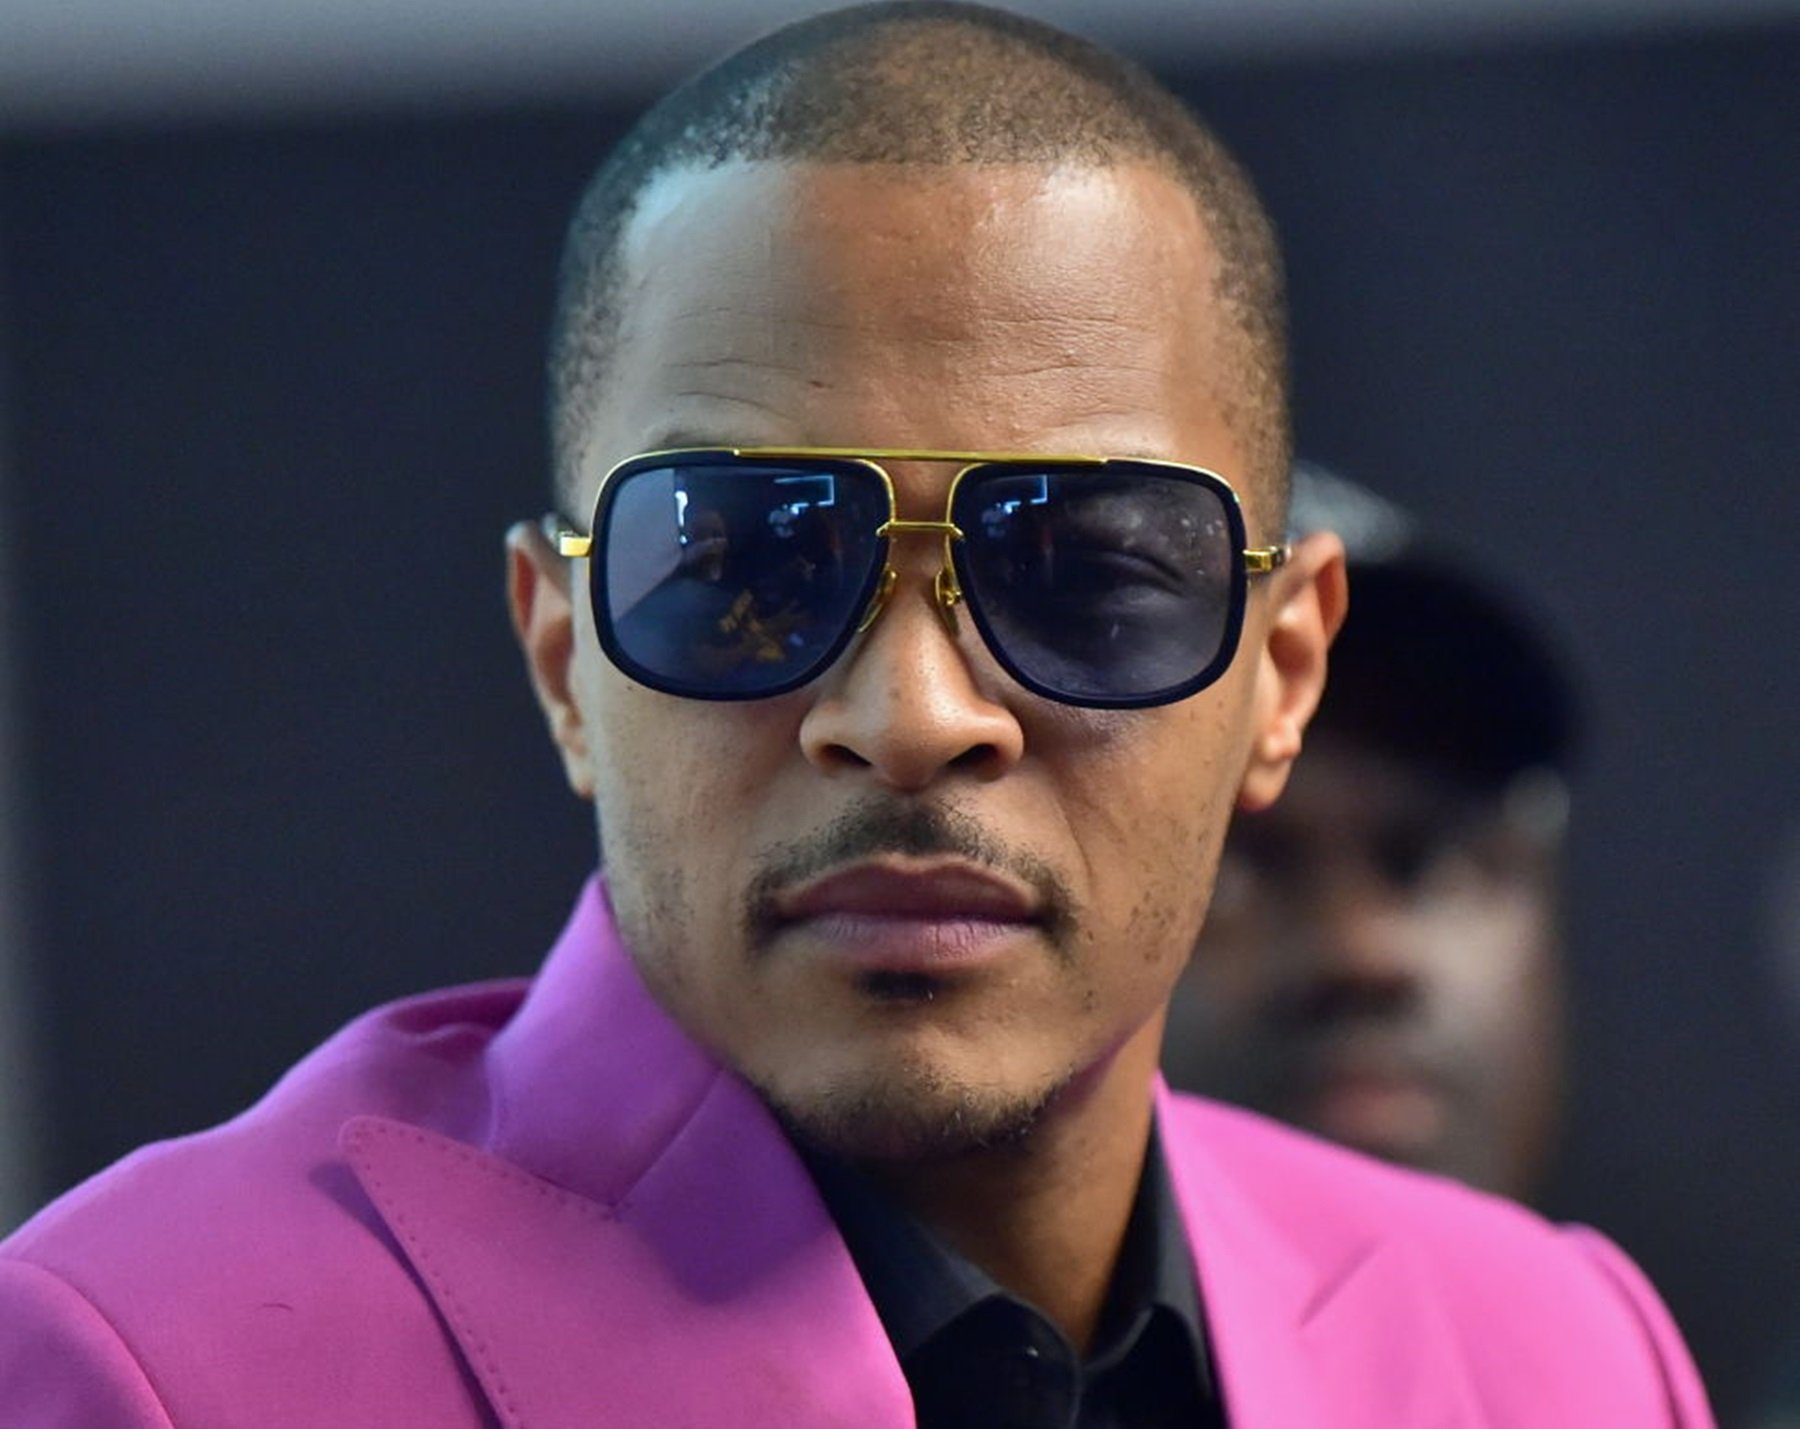 T.I. Shares A Throwback Video Featuring Nipsey Hussle And Impresses Fans